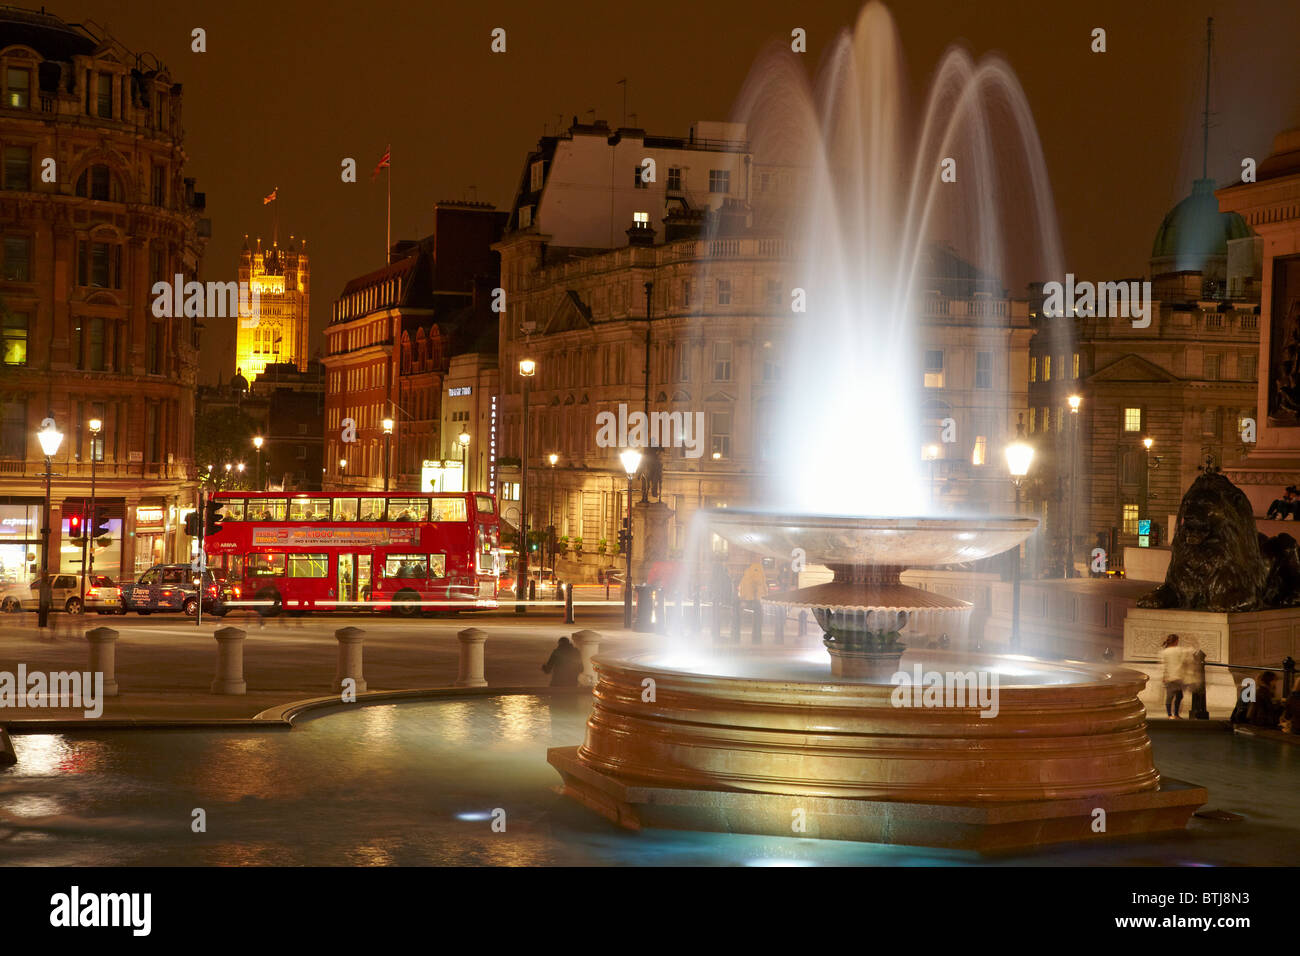 Fountain and bus, Trafalgar Square, and Houses of Parliament, London, England, United Kingdom - Stock Image